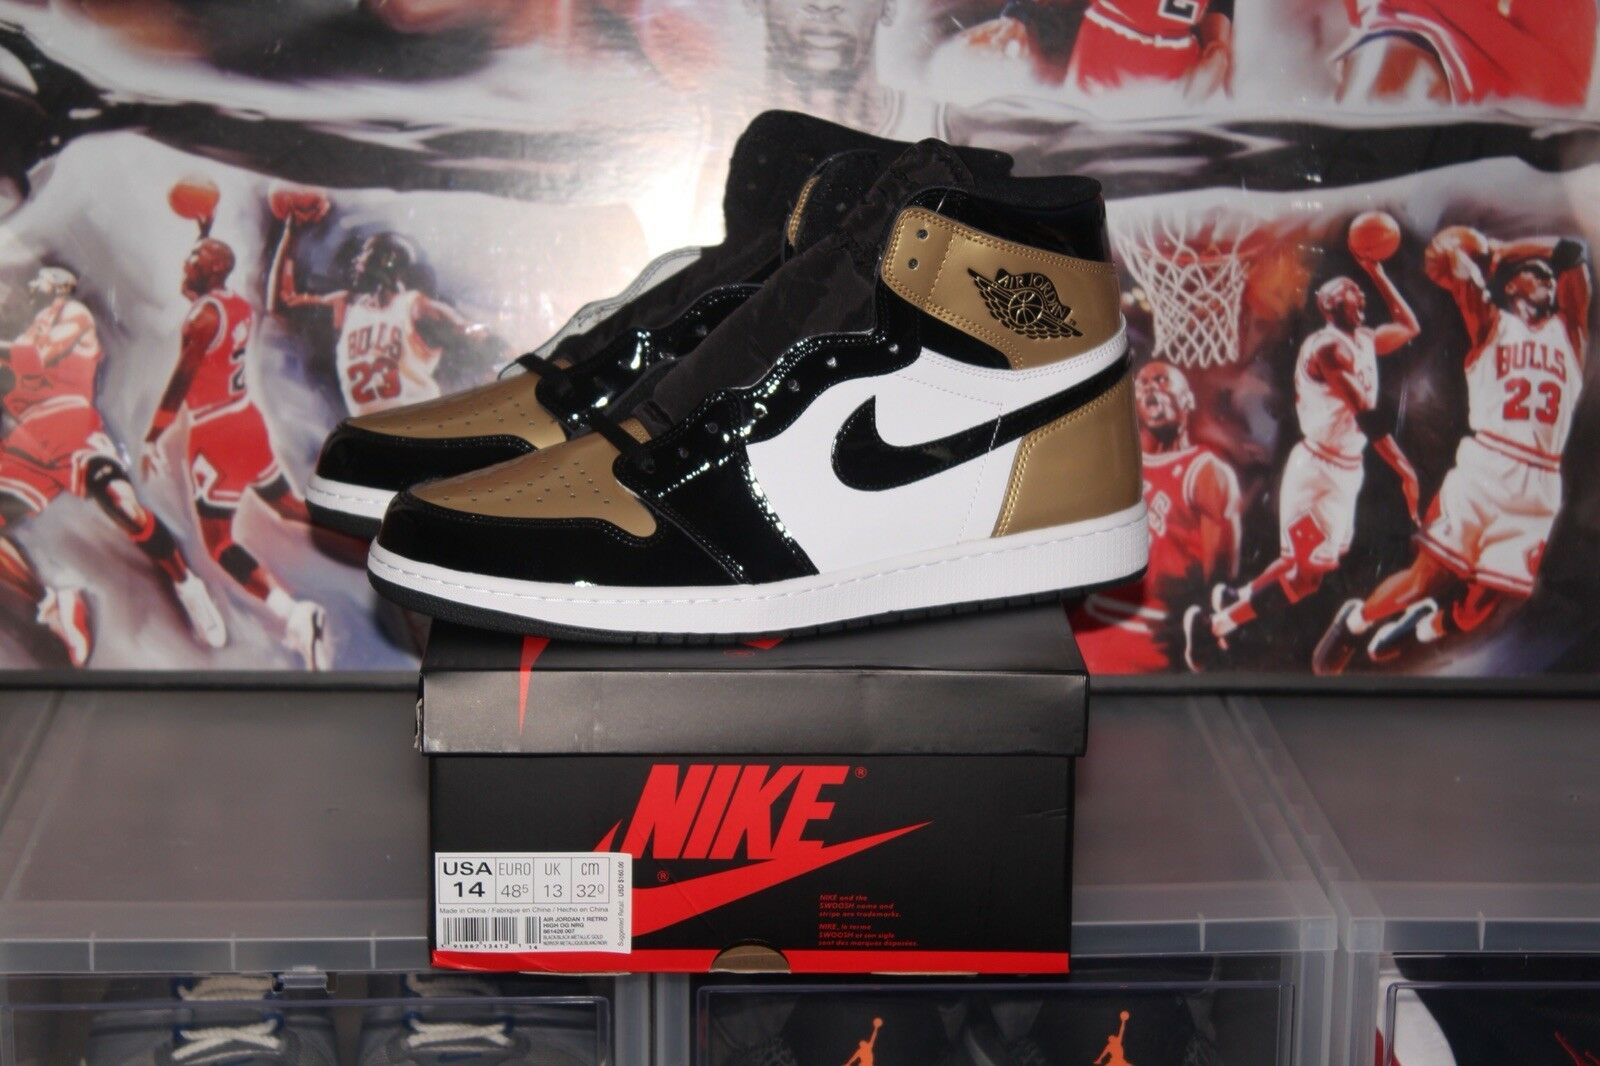 2018 - air jordan 1 retro - 2018 hohe nrg